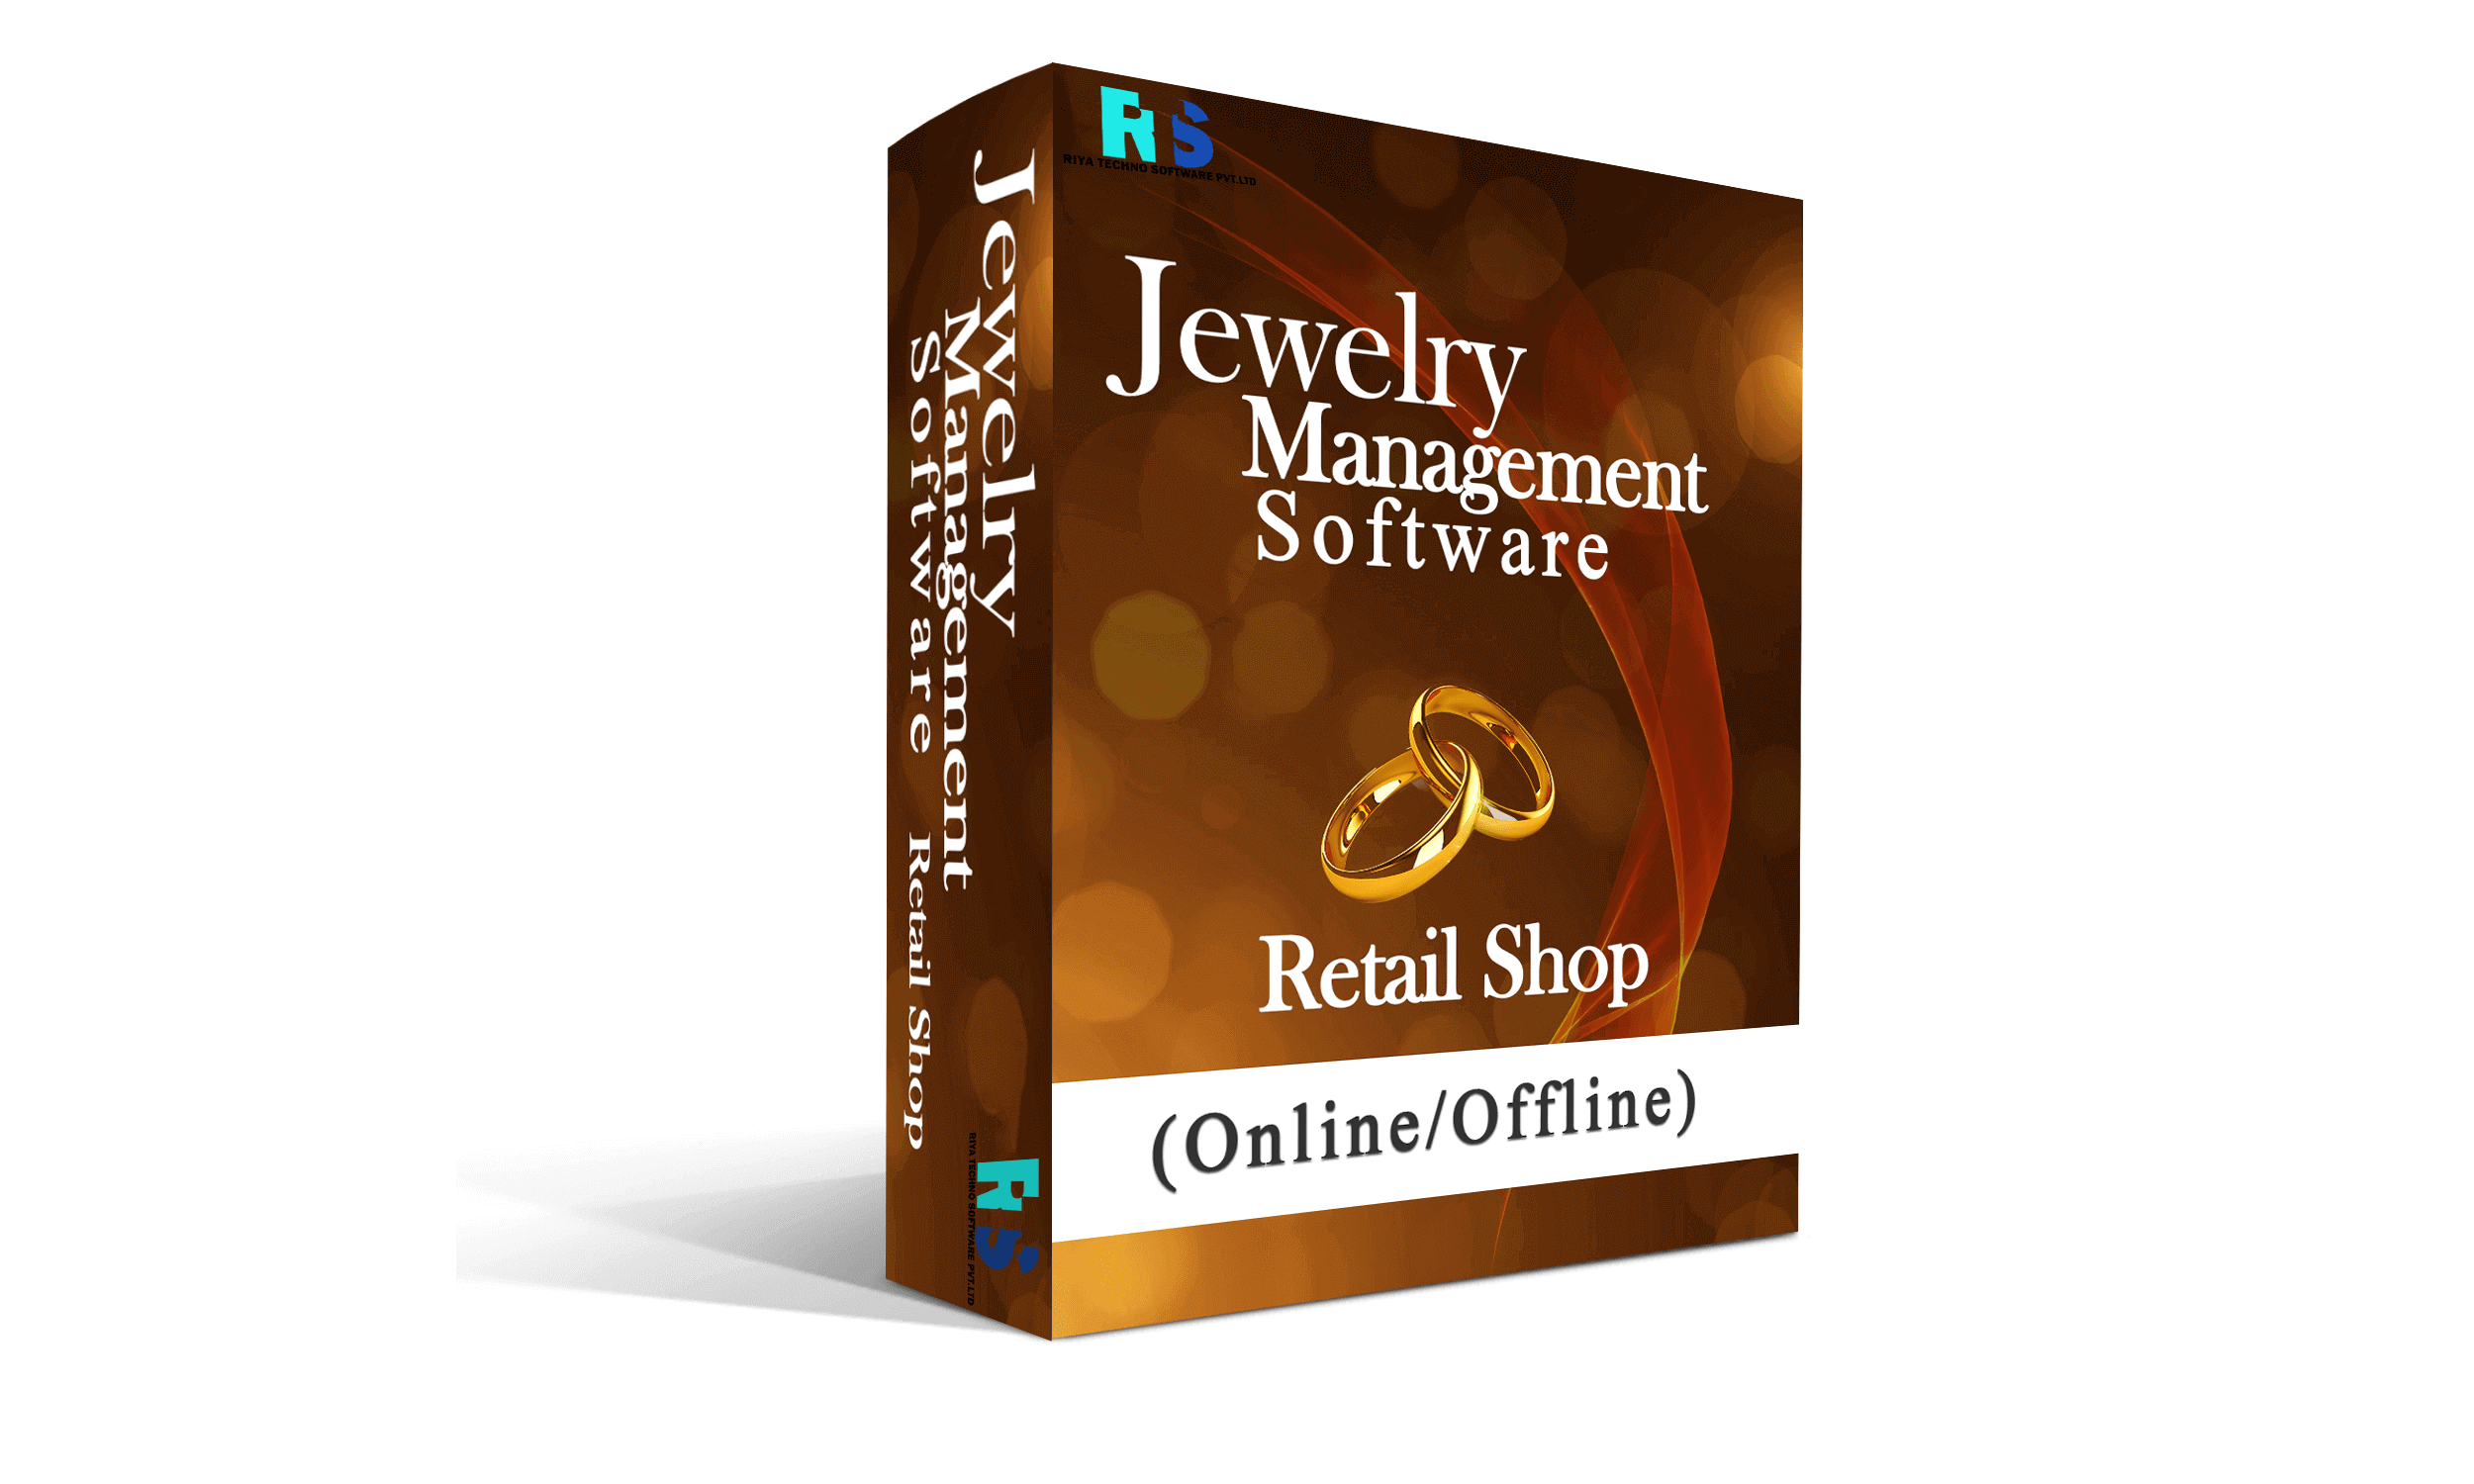 Jewelery Management Software